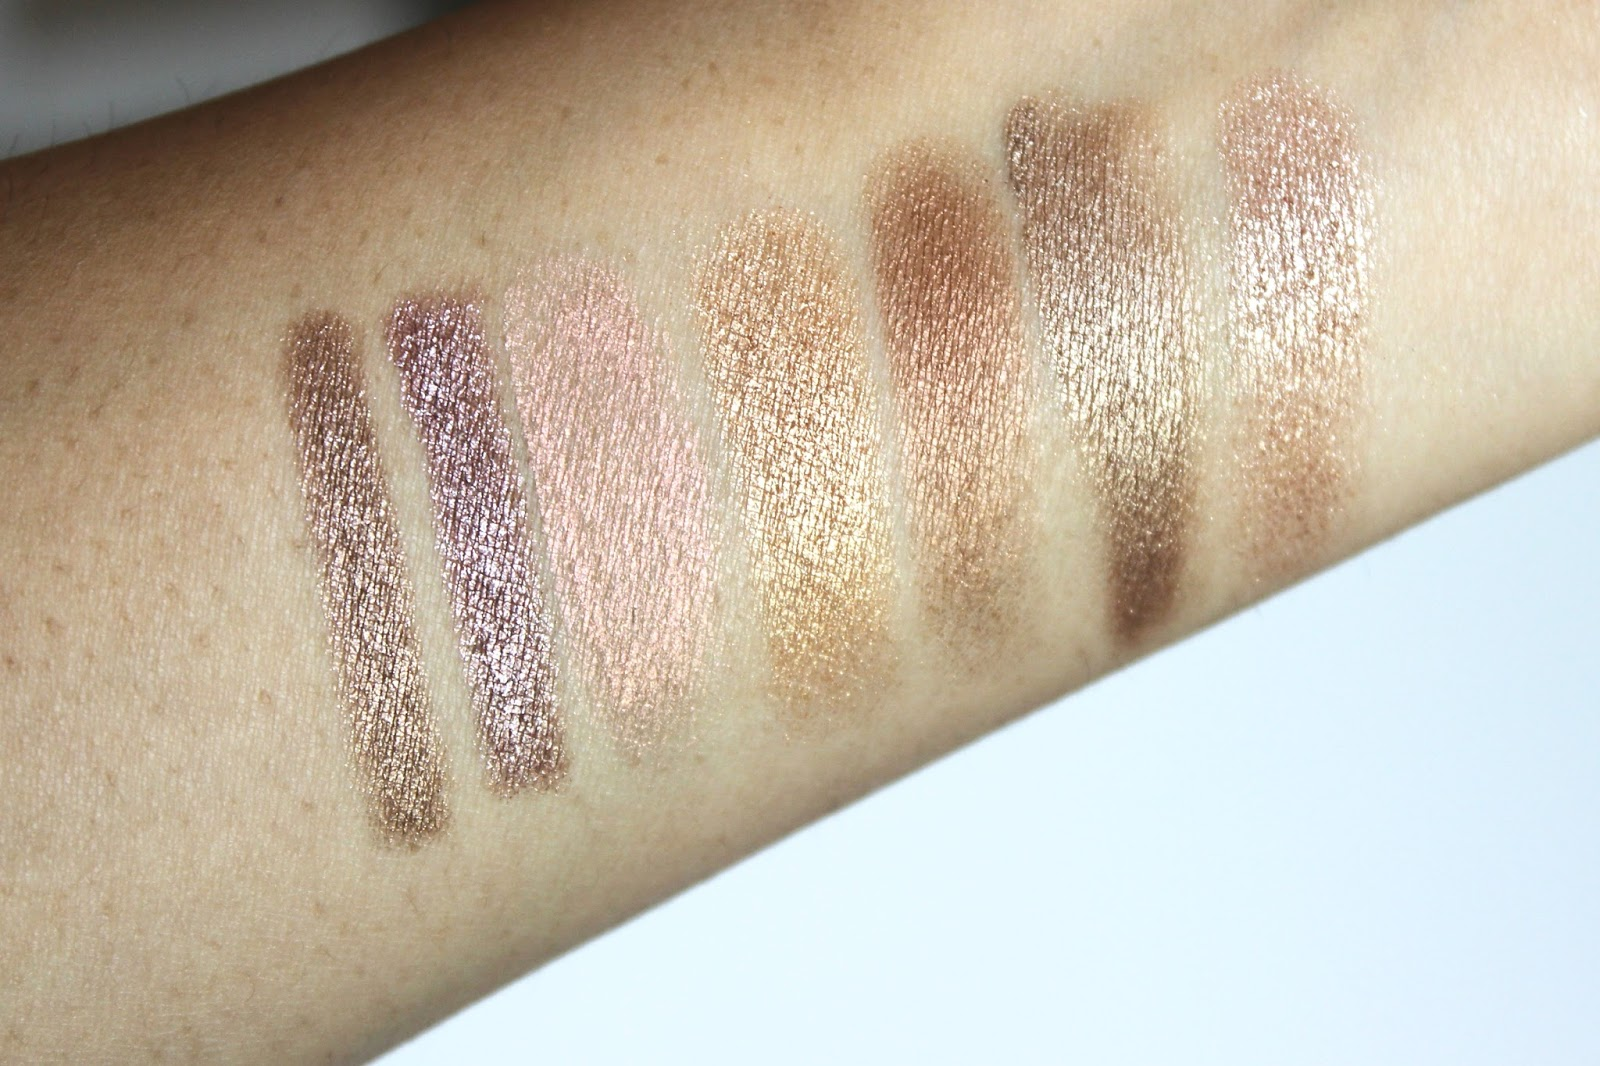 Armani eye tint, by terry bronze moon swatches